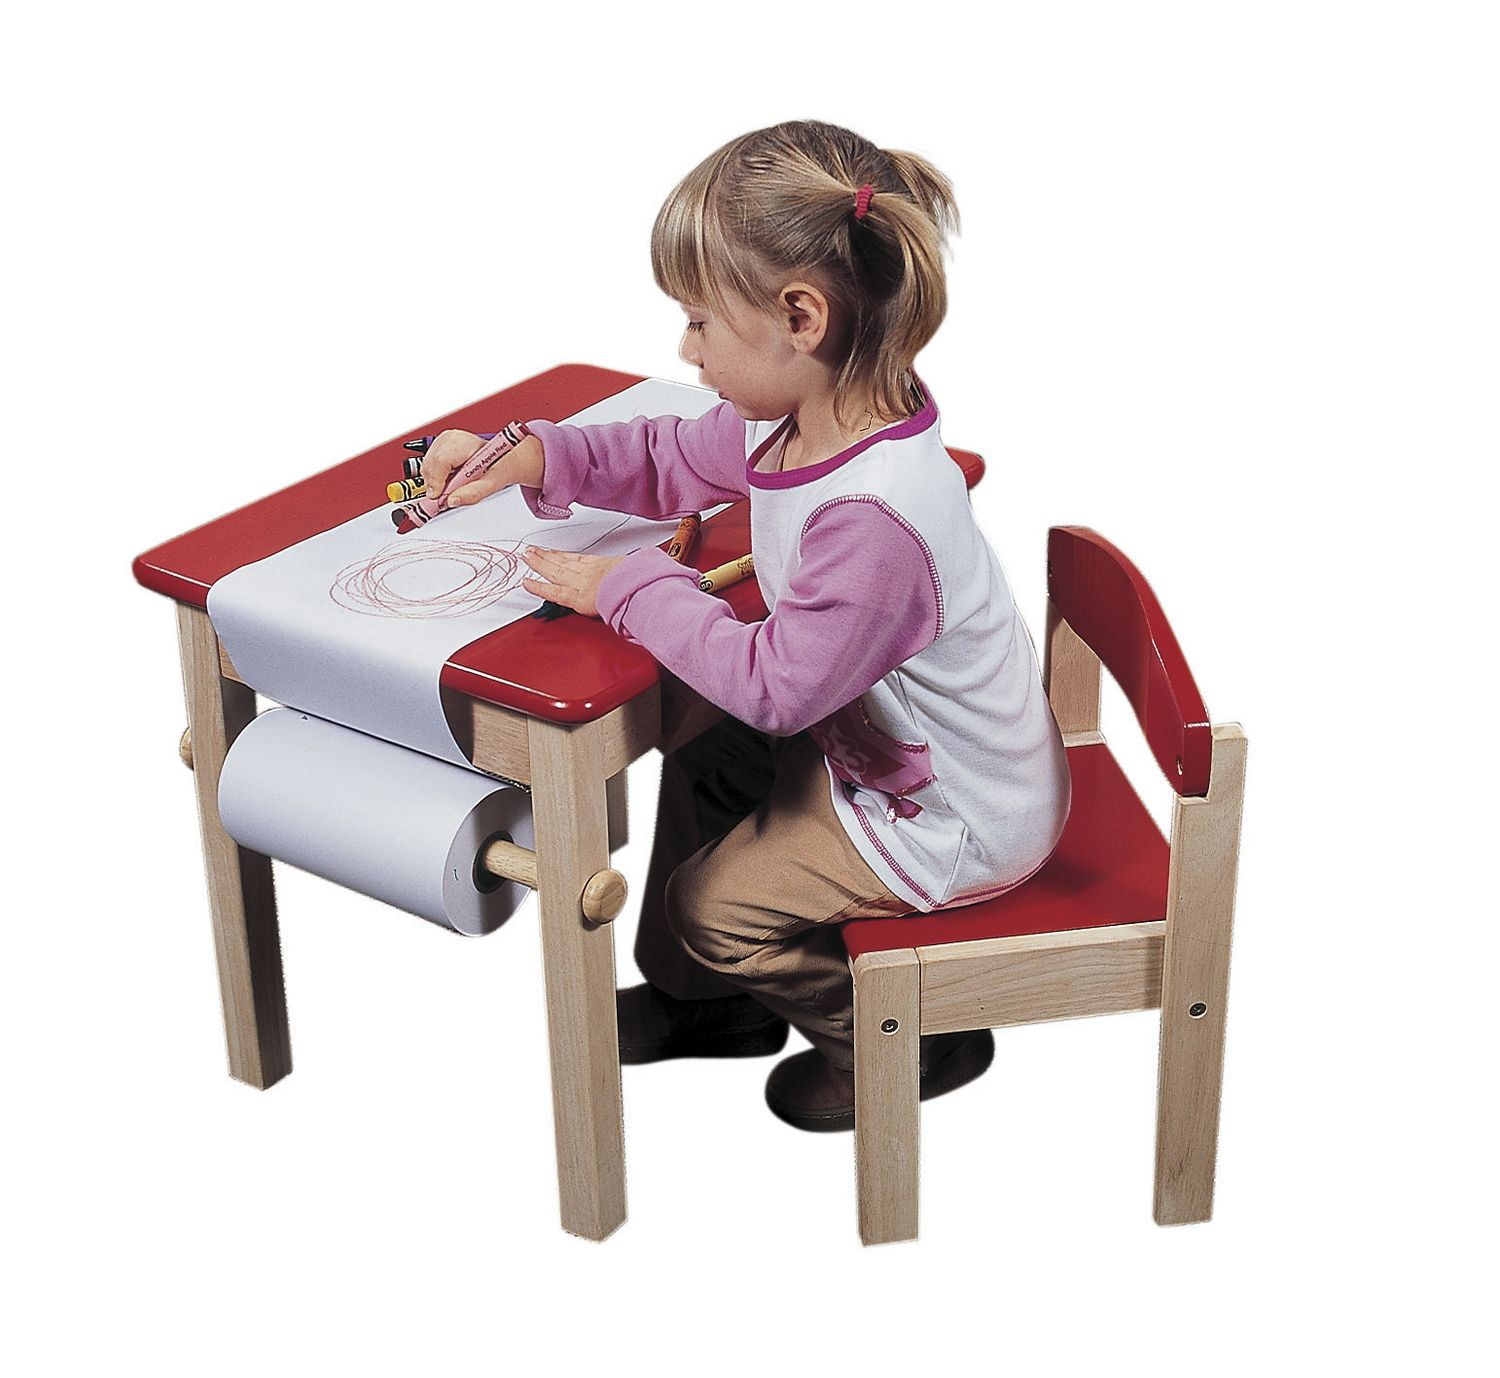 Toddler Art Table Great Childus Play The Art Toy Rotation Plus